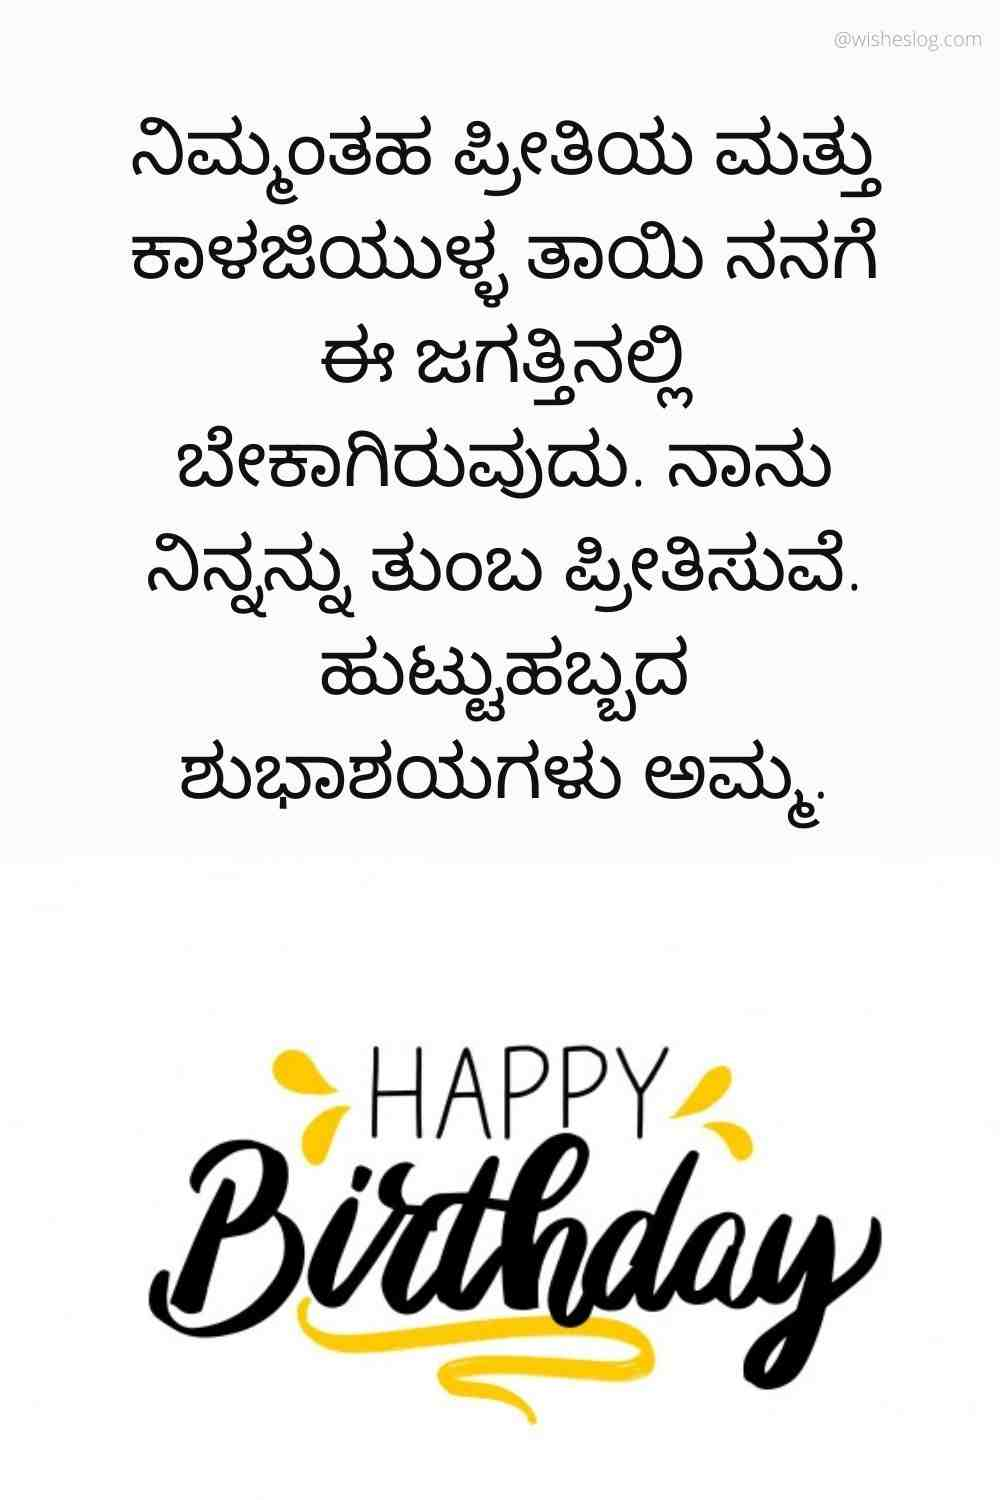 birthday wishes for mom in kannada